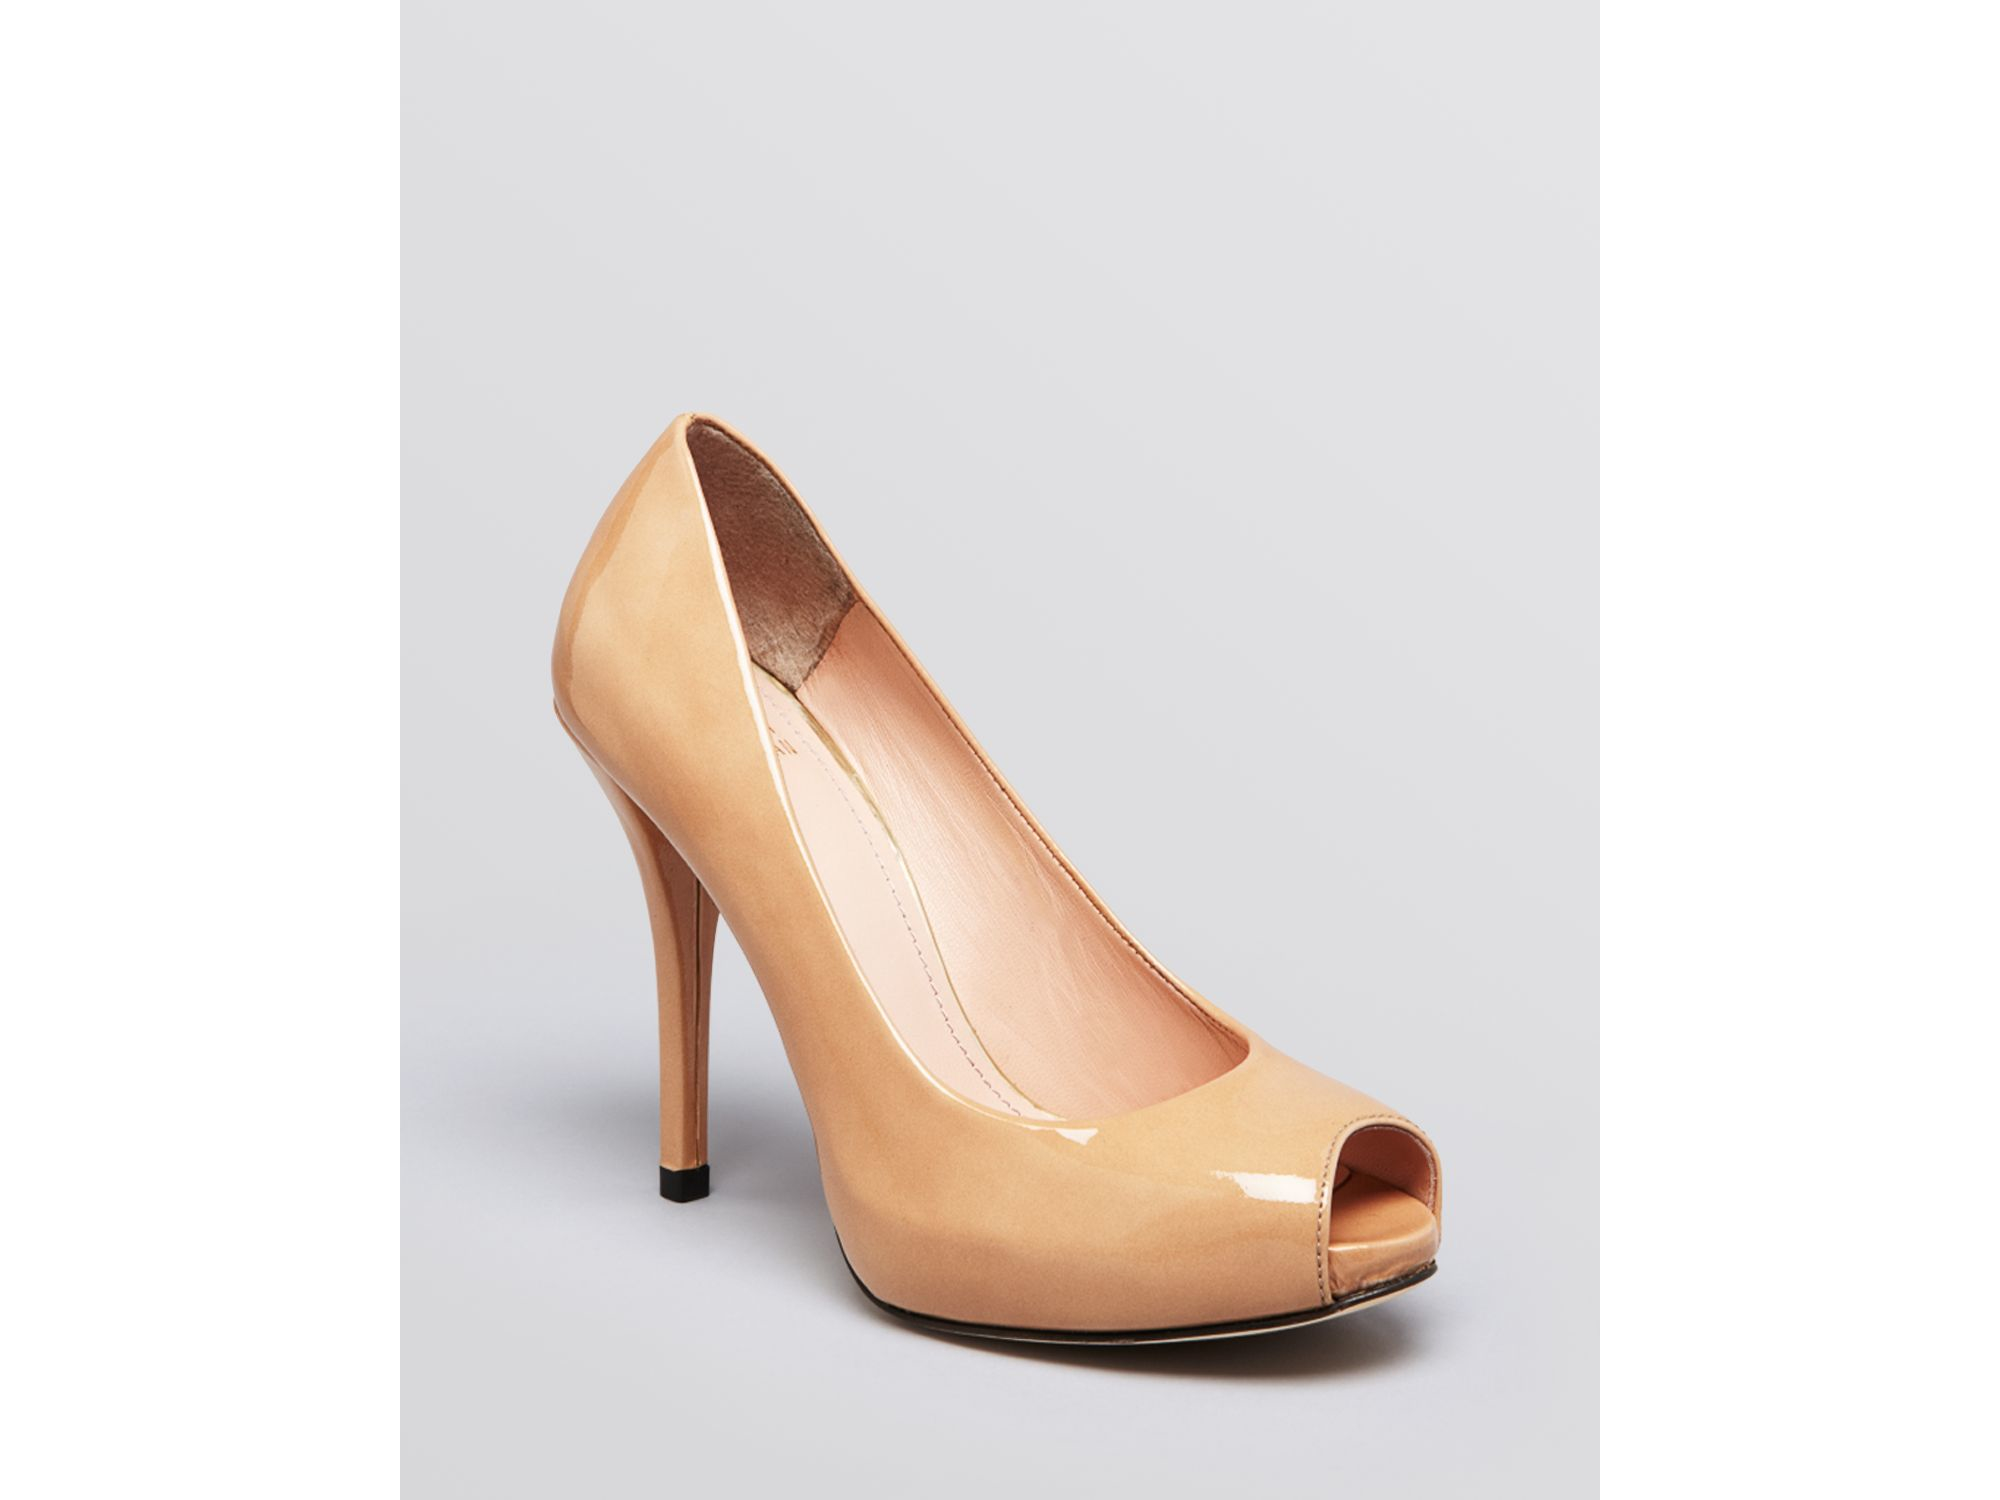 outlet genuine outlet official site Stuart Weitzman Metallic Peep-Toe Platform Pumps wiki online best for sale b9U6ubUI